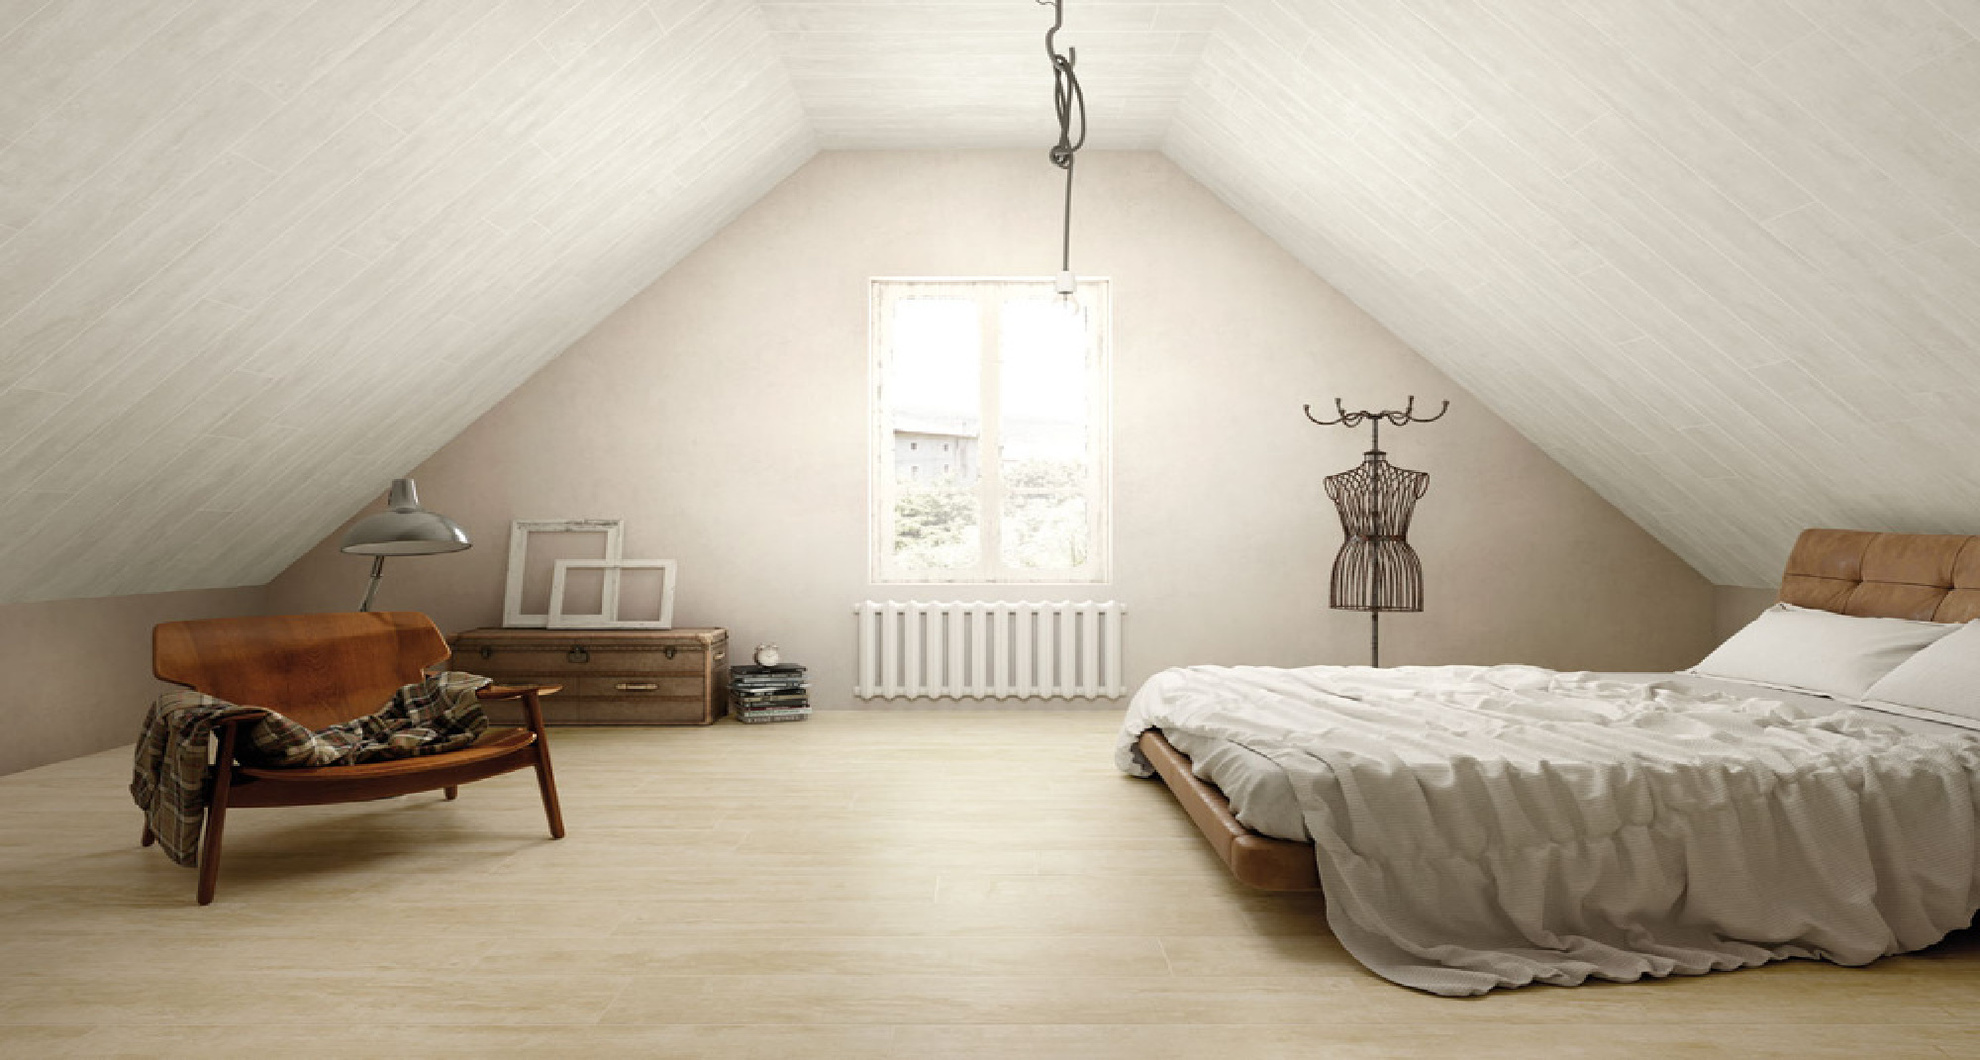 guide floors will we been your and wood know on super any you late flooring who options floor ve of articles porcelain textures collection tiles to blog following stock a beyond have the that our at introduced